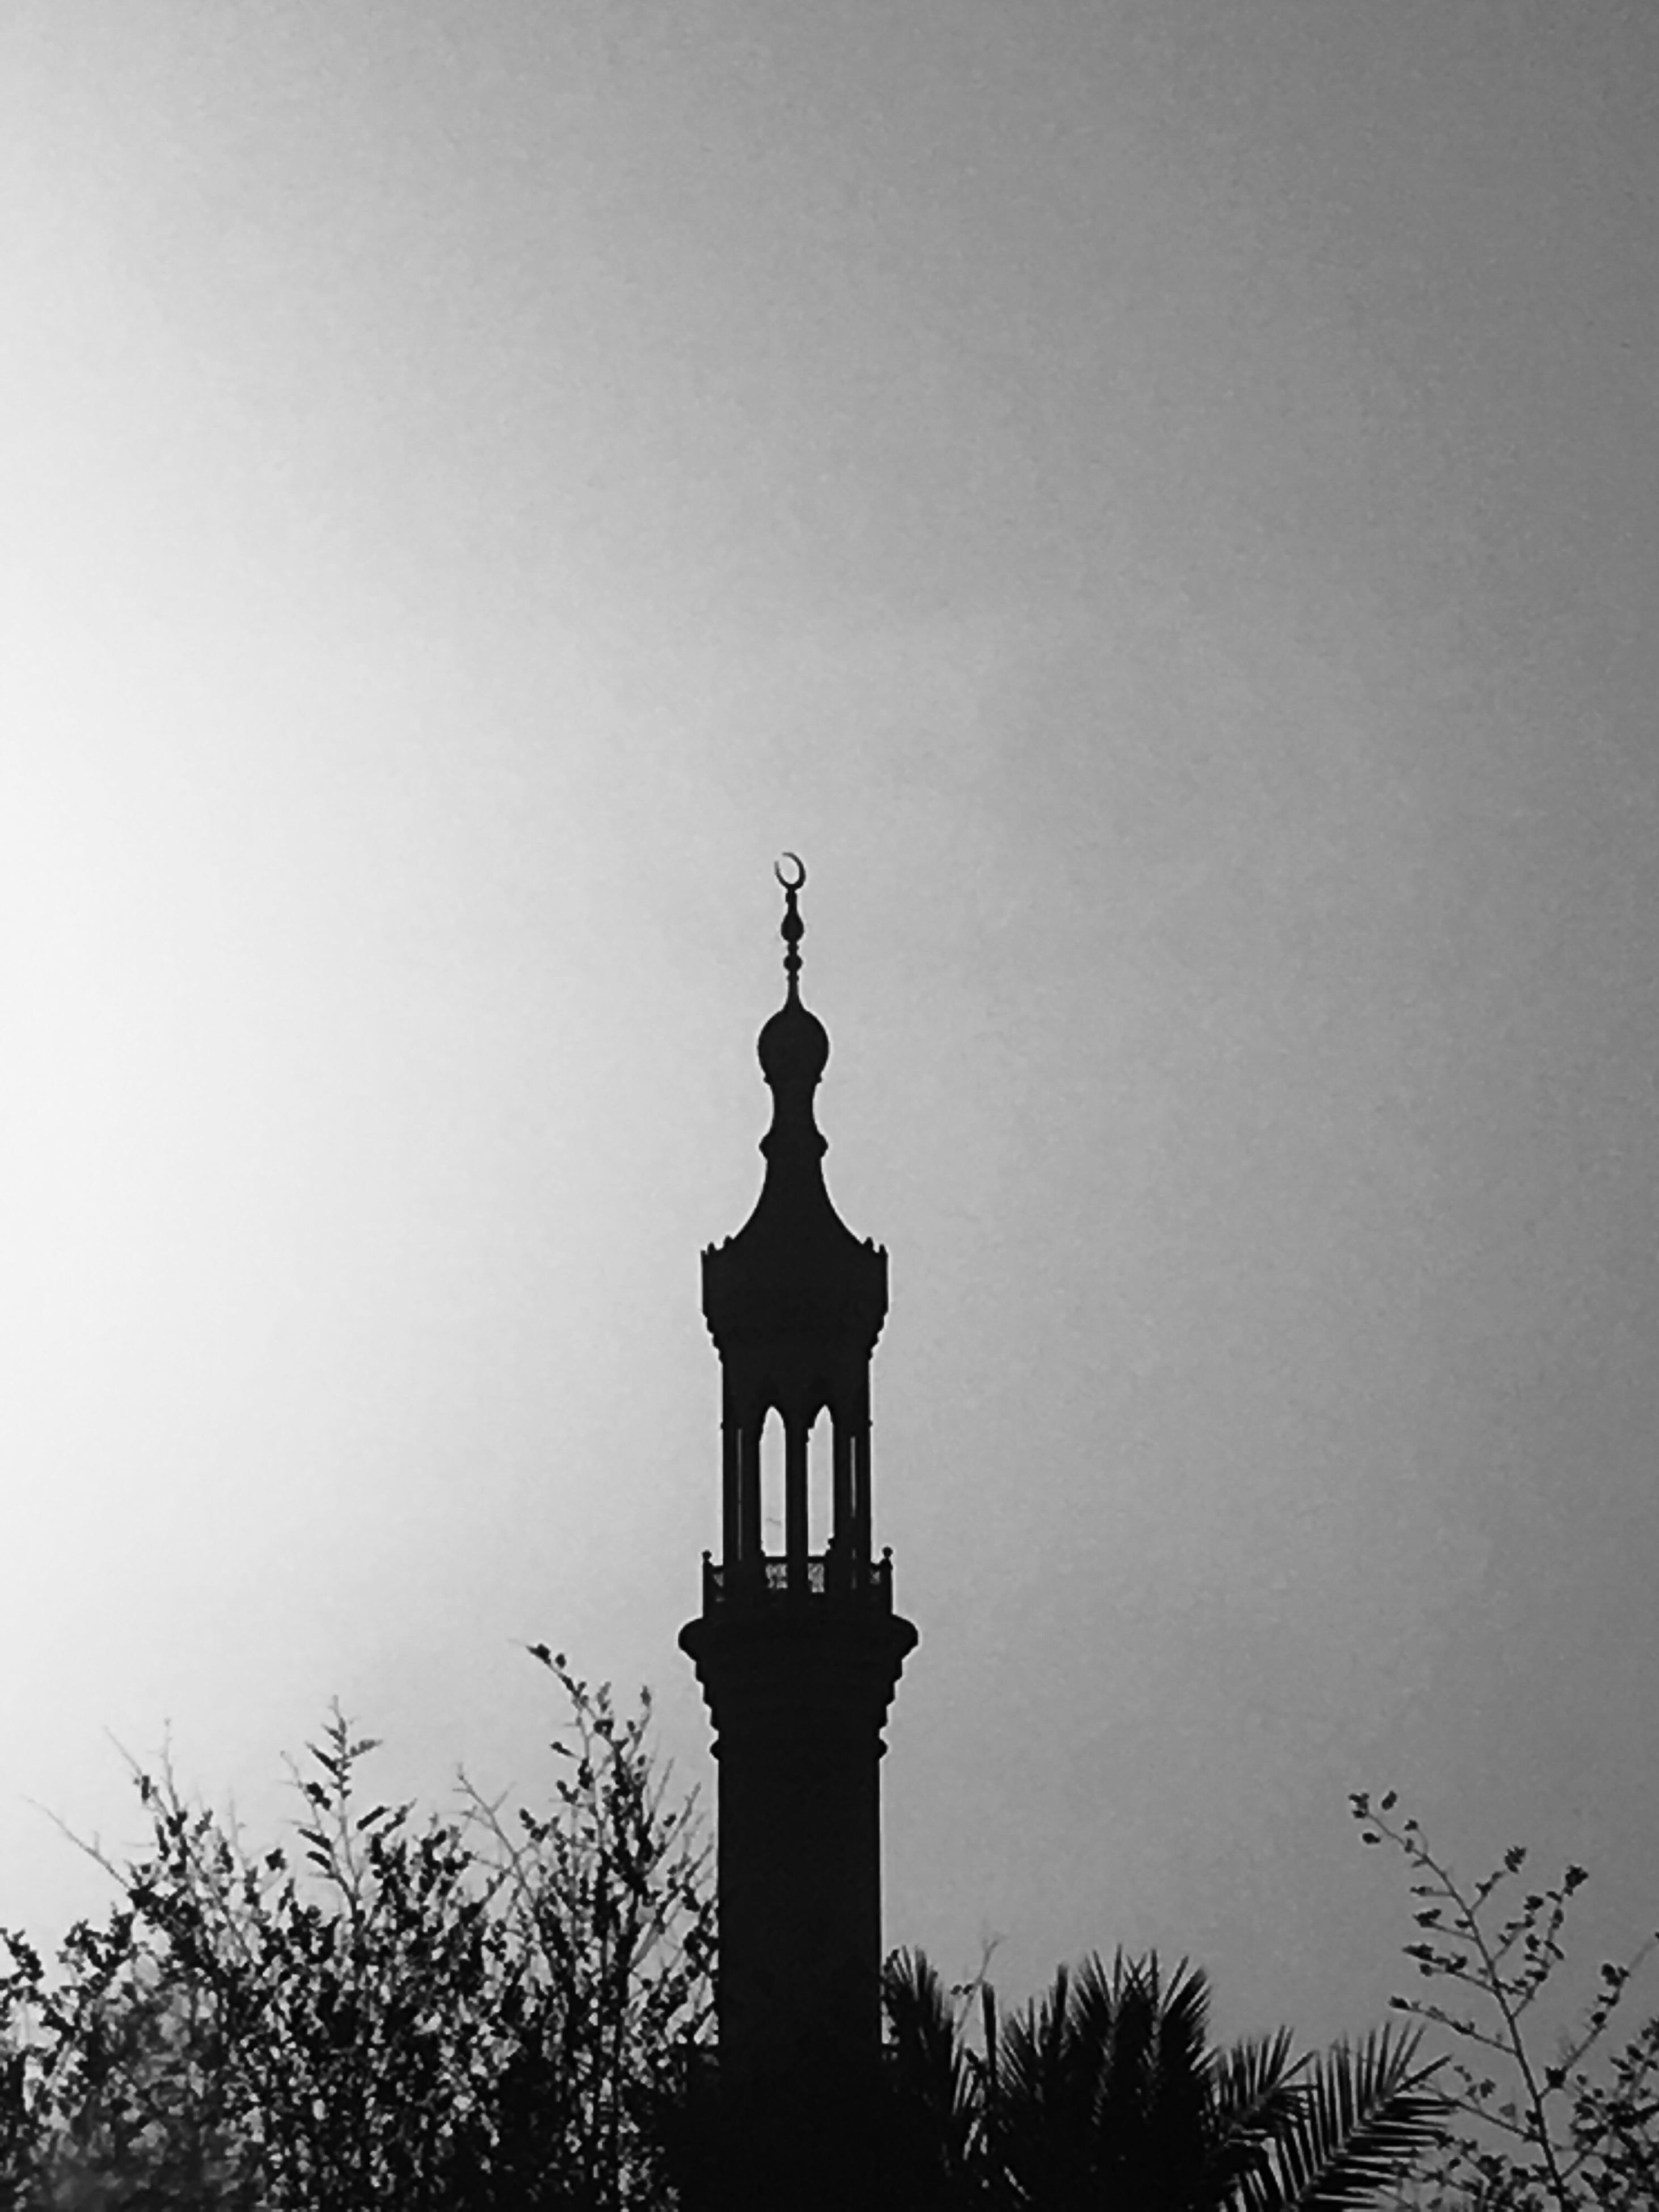 silhouette, low angle view, copy space, clear sky, high section, outline, outdoors, day, sky, treetop, no people, history, spire